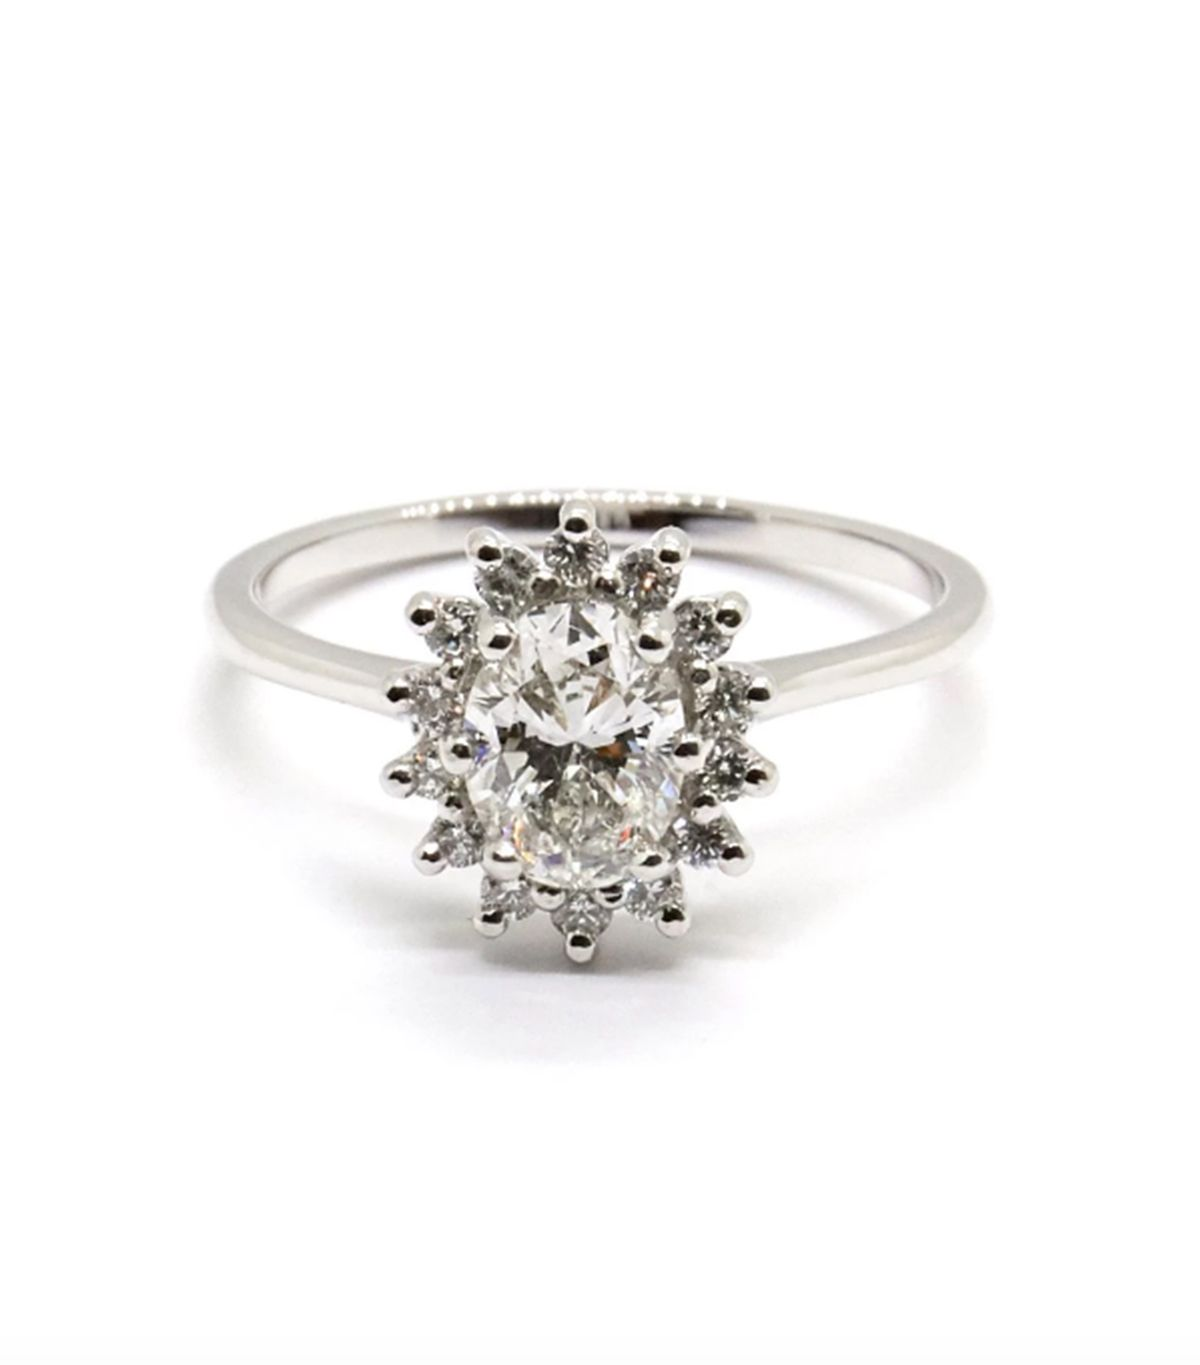 7 Things That Always Make an Engagement Ring Look Cheap 11